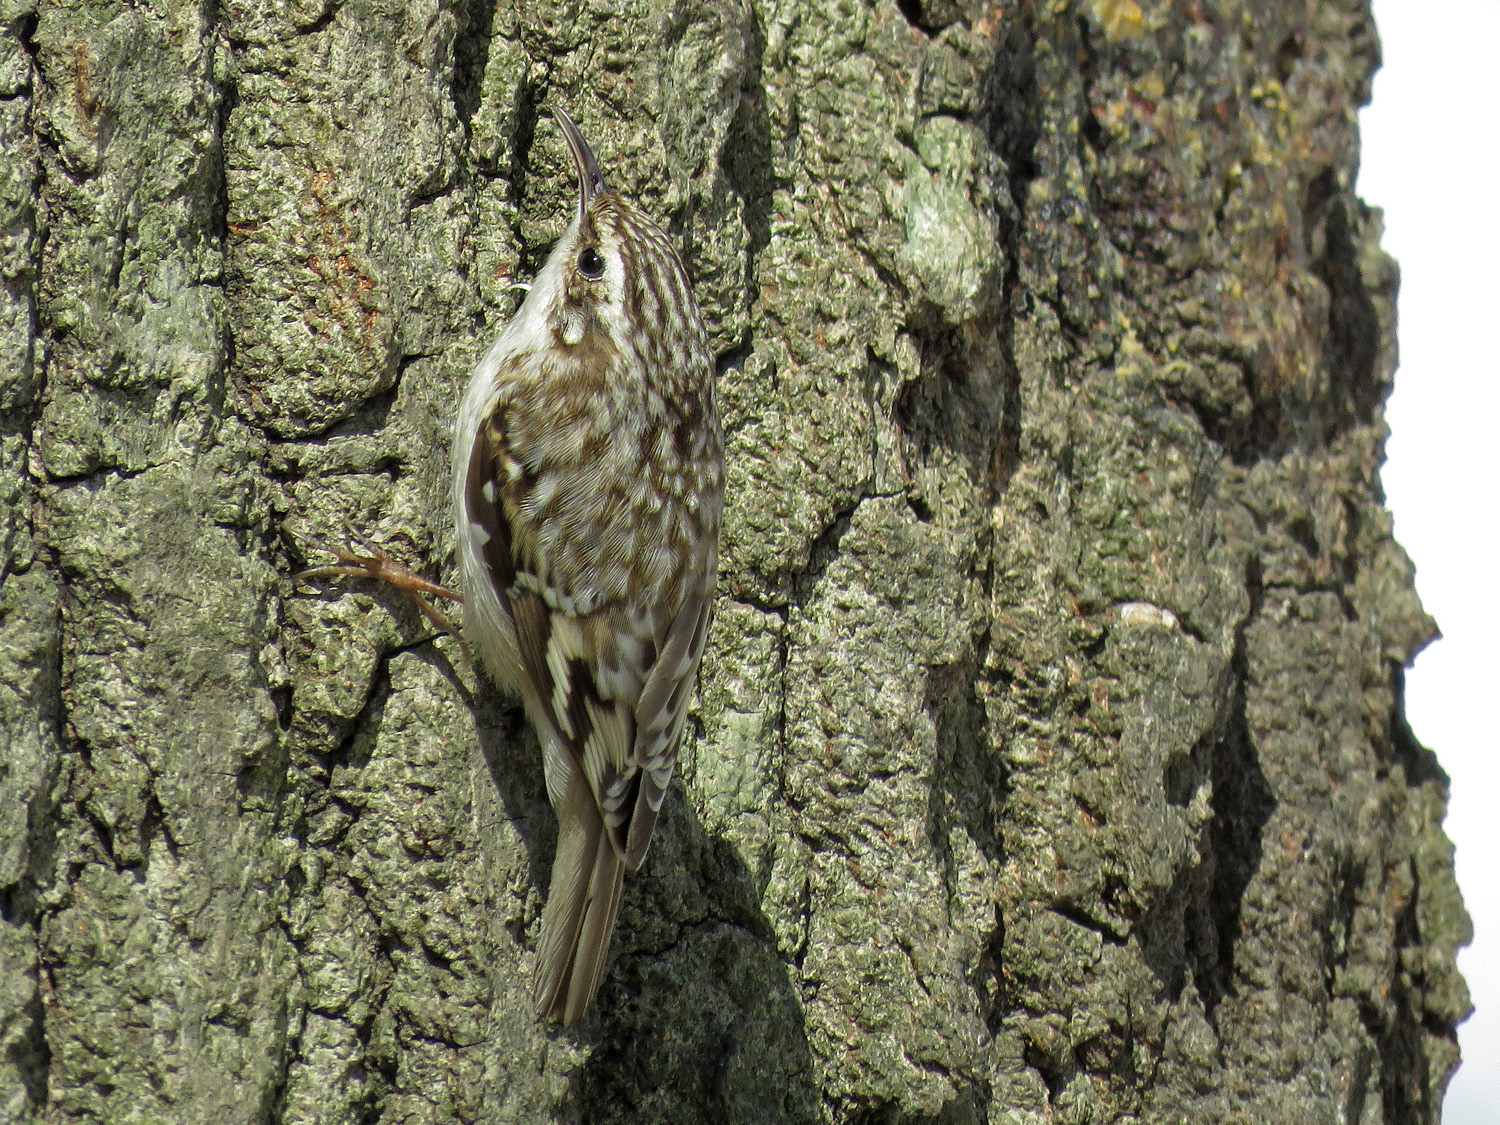 Brown creeper, Central Park, March 23, 2018